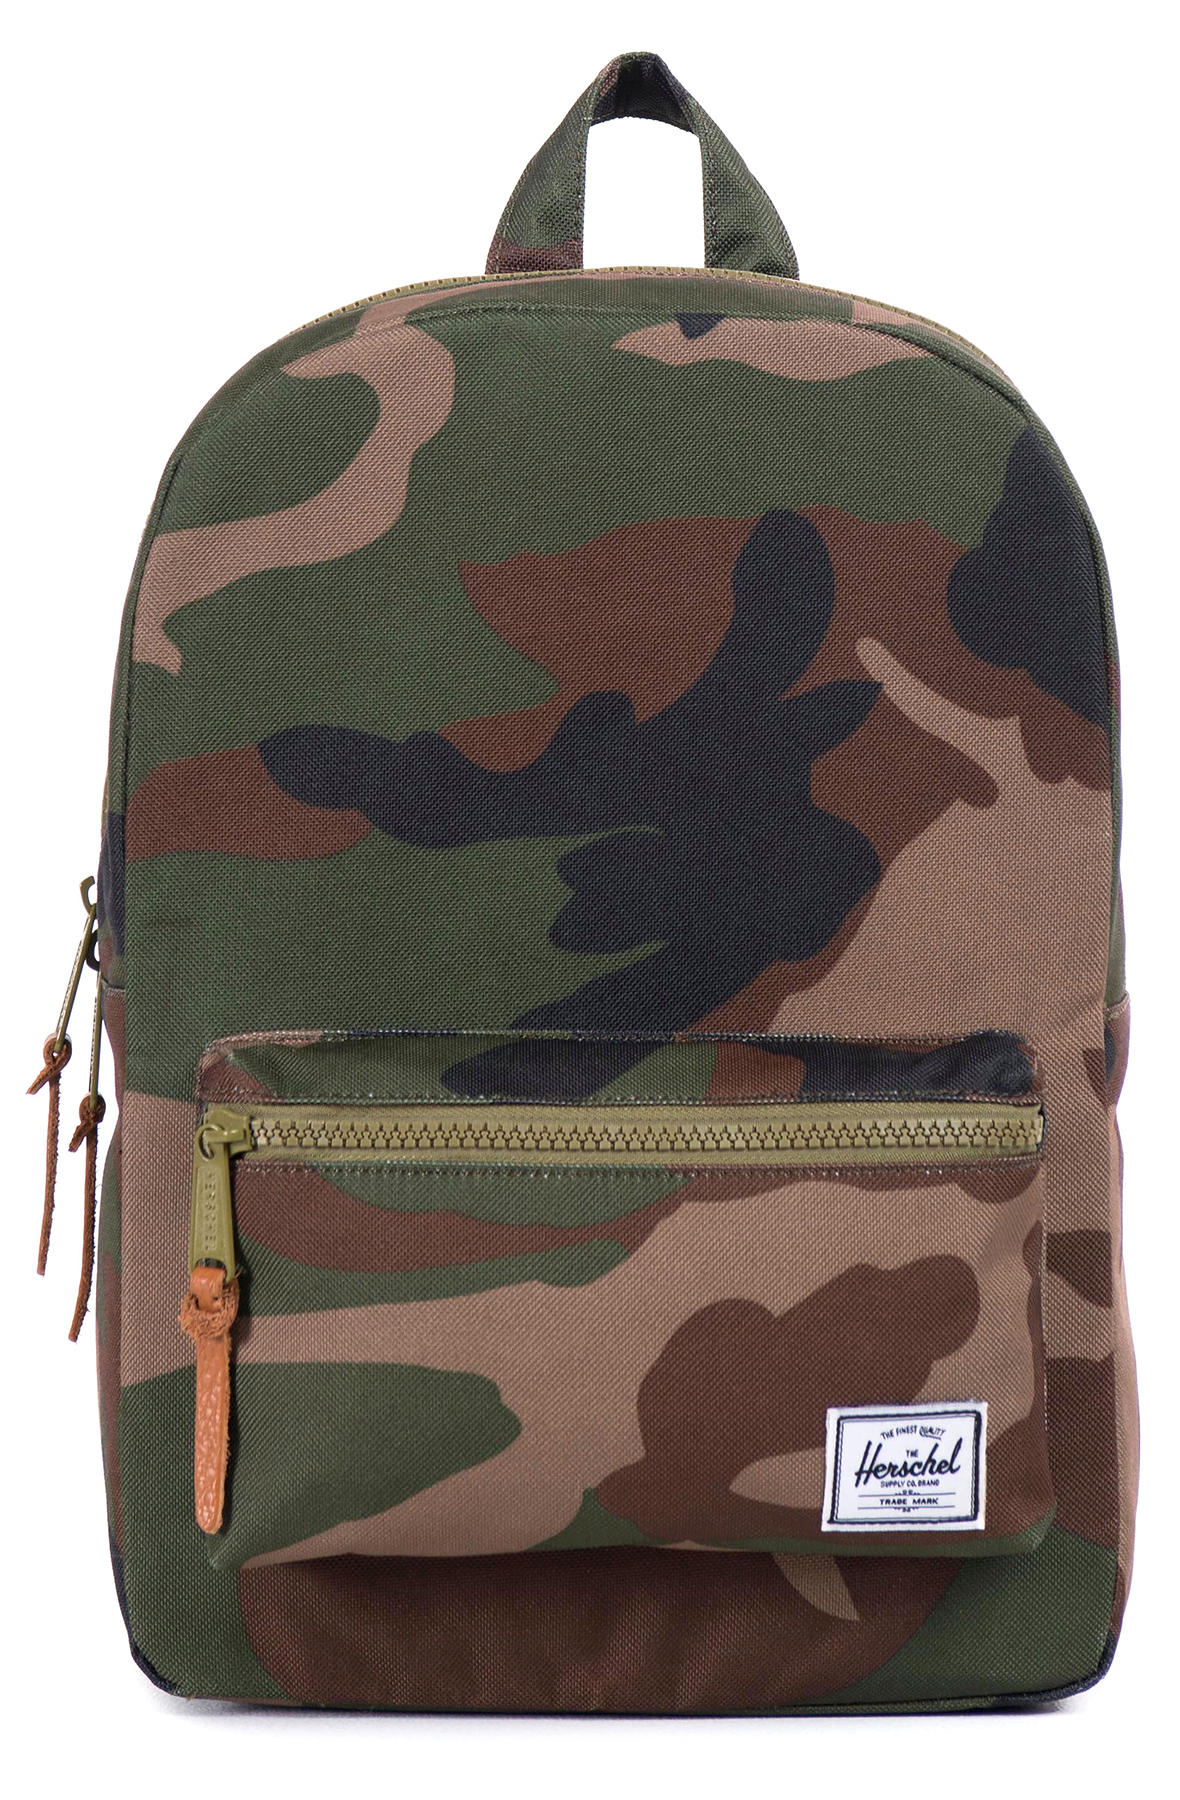 Herschel Supply Co. The Settlement Kids Backpack in Green (Camo)